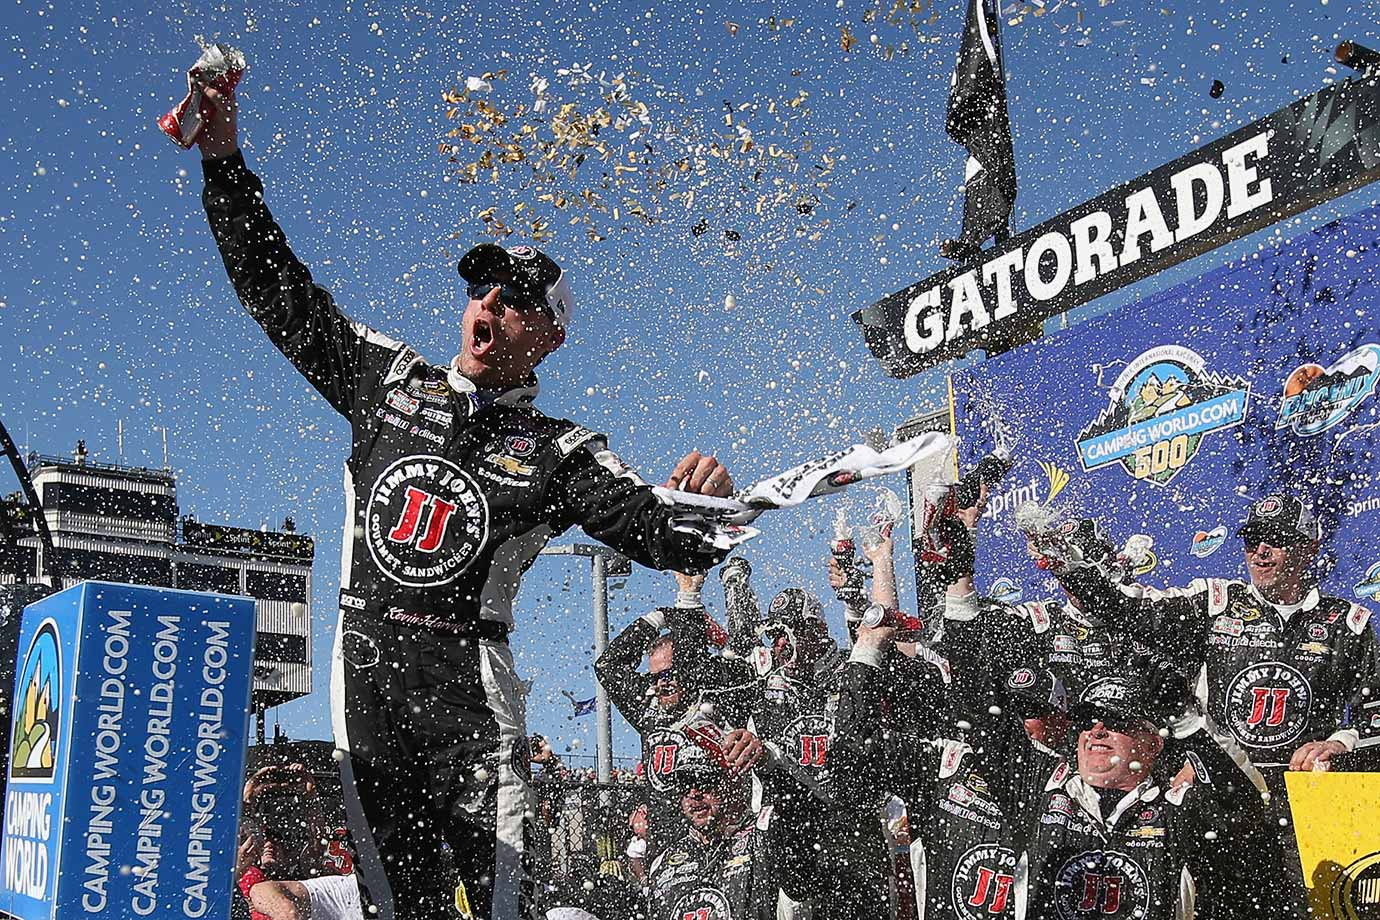 Kevin Harvick celebrates in Victory Lane after winning the CampingWorld.com 500 race at Phoenix International Raceway on March 15, 2015.